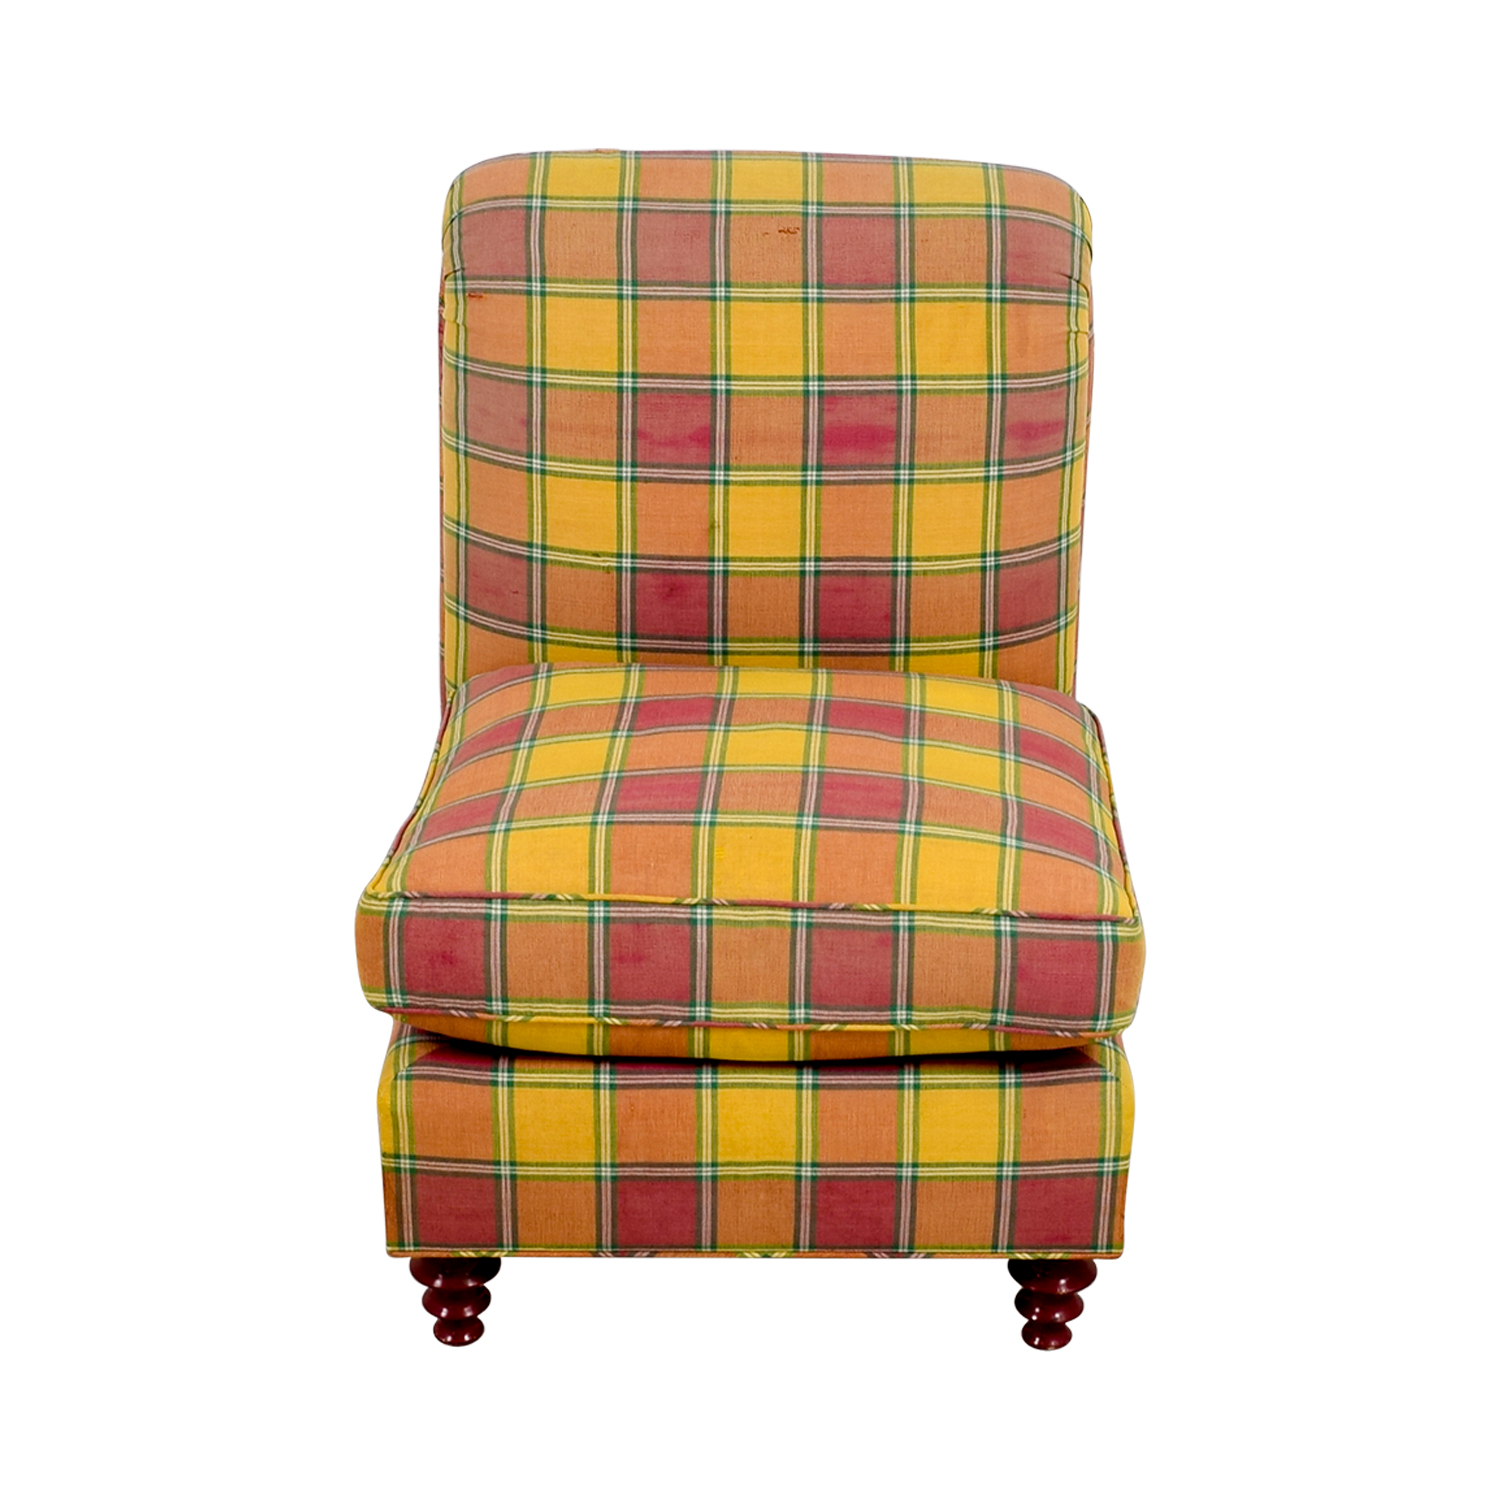 Furniture Masters Furniture Masters Red and Yellow Plaid Accent Chair nyc